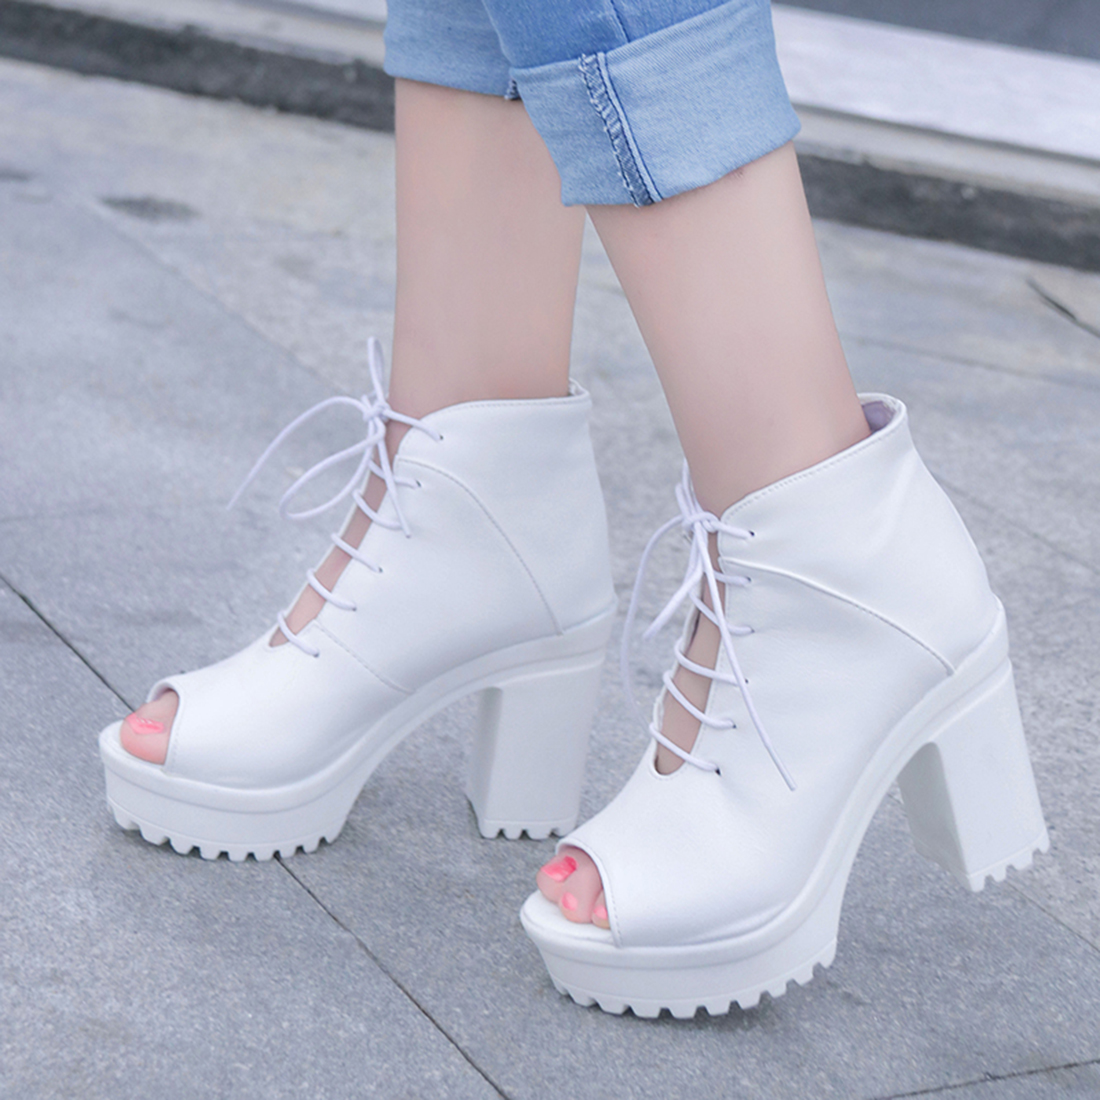 2017 Summer shoes woman Platform Sandals Women Soft Leather Casual Open Toe Gladiator wedges Women boots zapatos mujer plus size 34 44 summer shoes woman platform sandals women rhinestone casual open toe gladiator wedges women zapatos mujer shoes